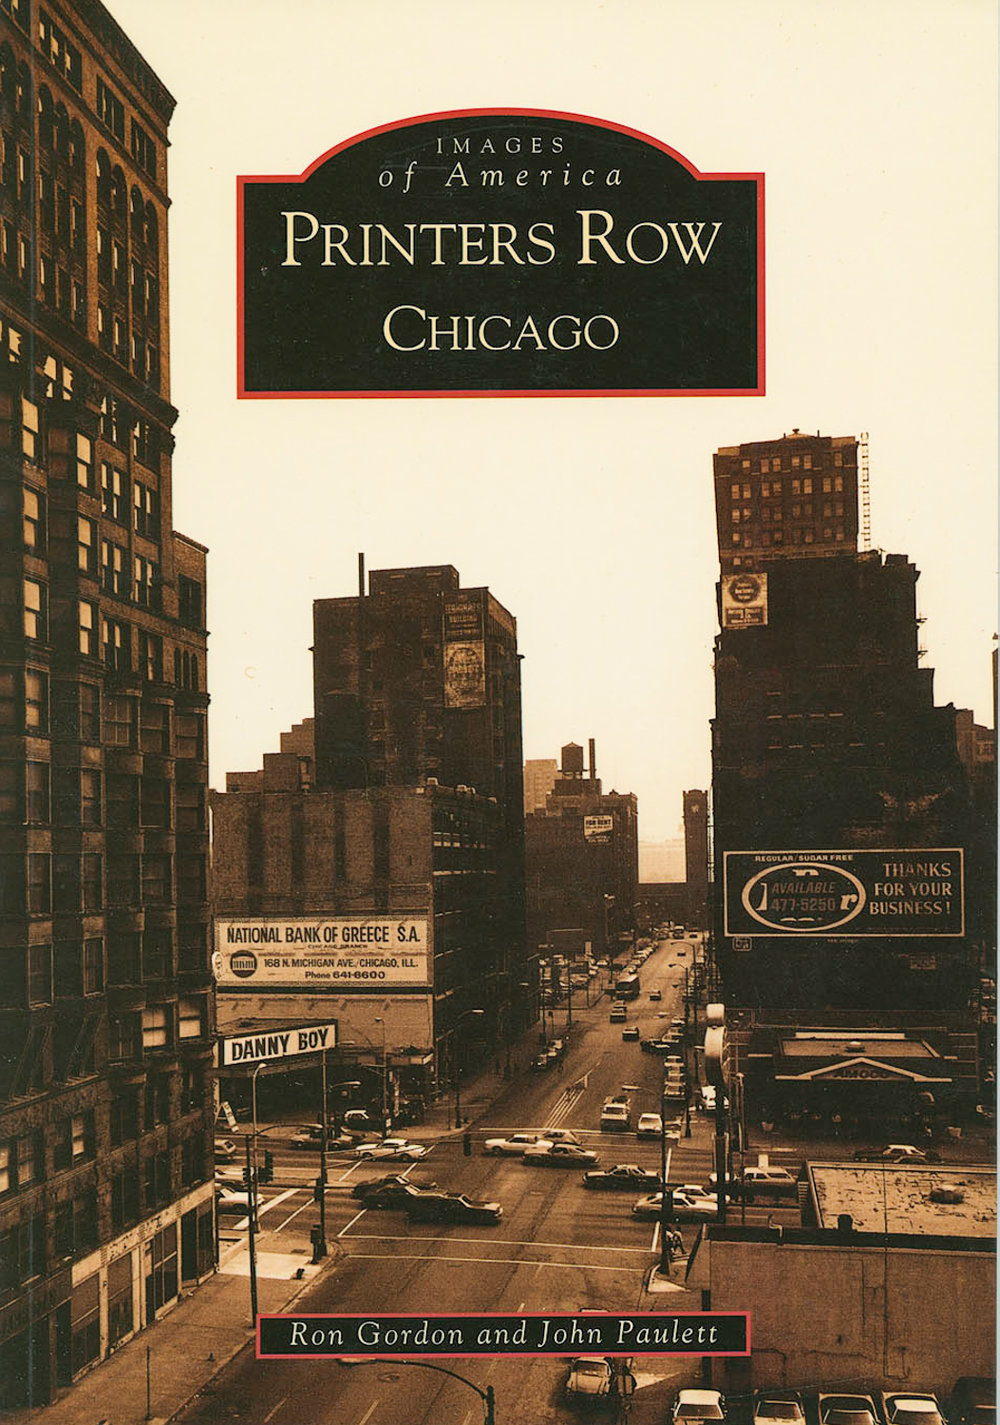 Printers Row Chicago Arcadia Publications with Kohn Paulett 2003